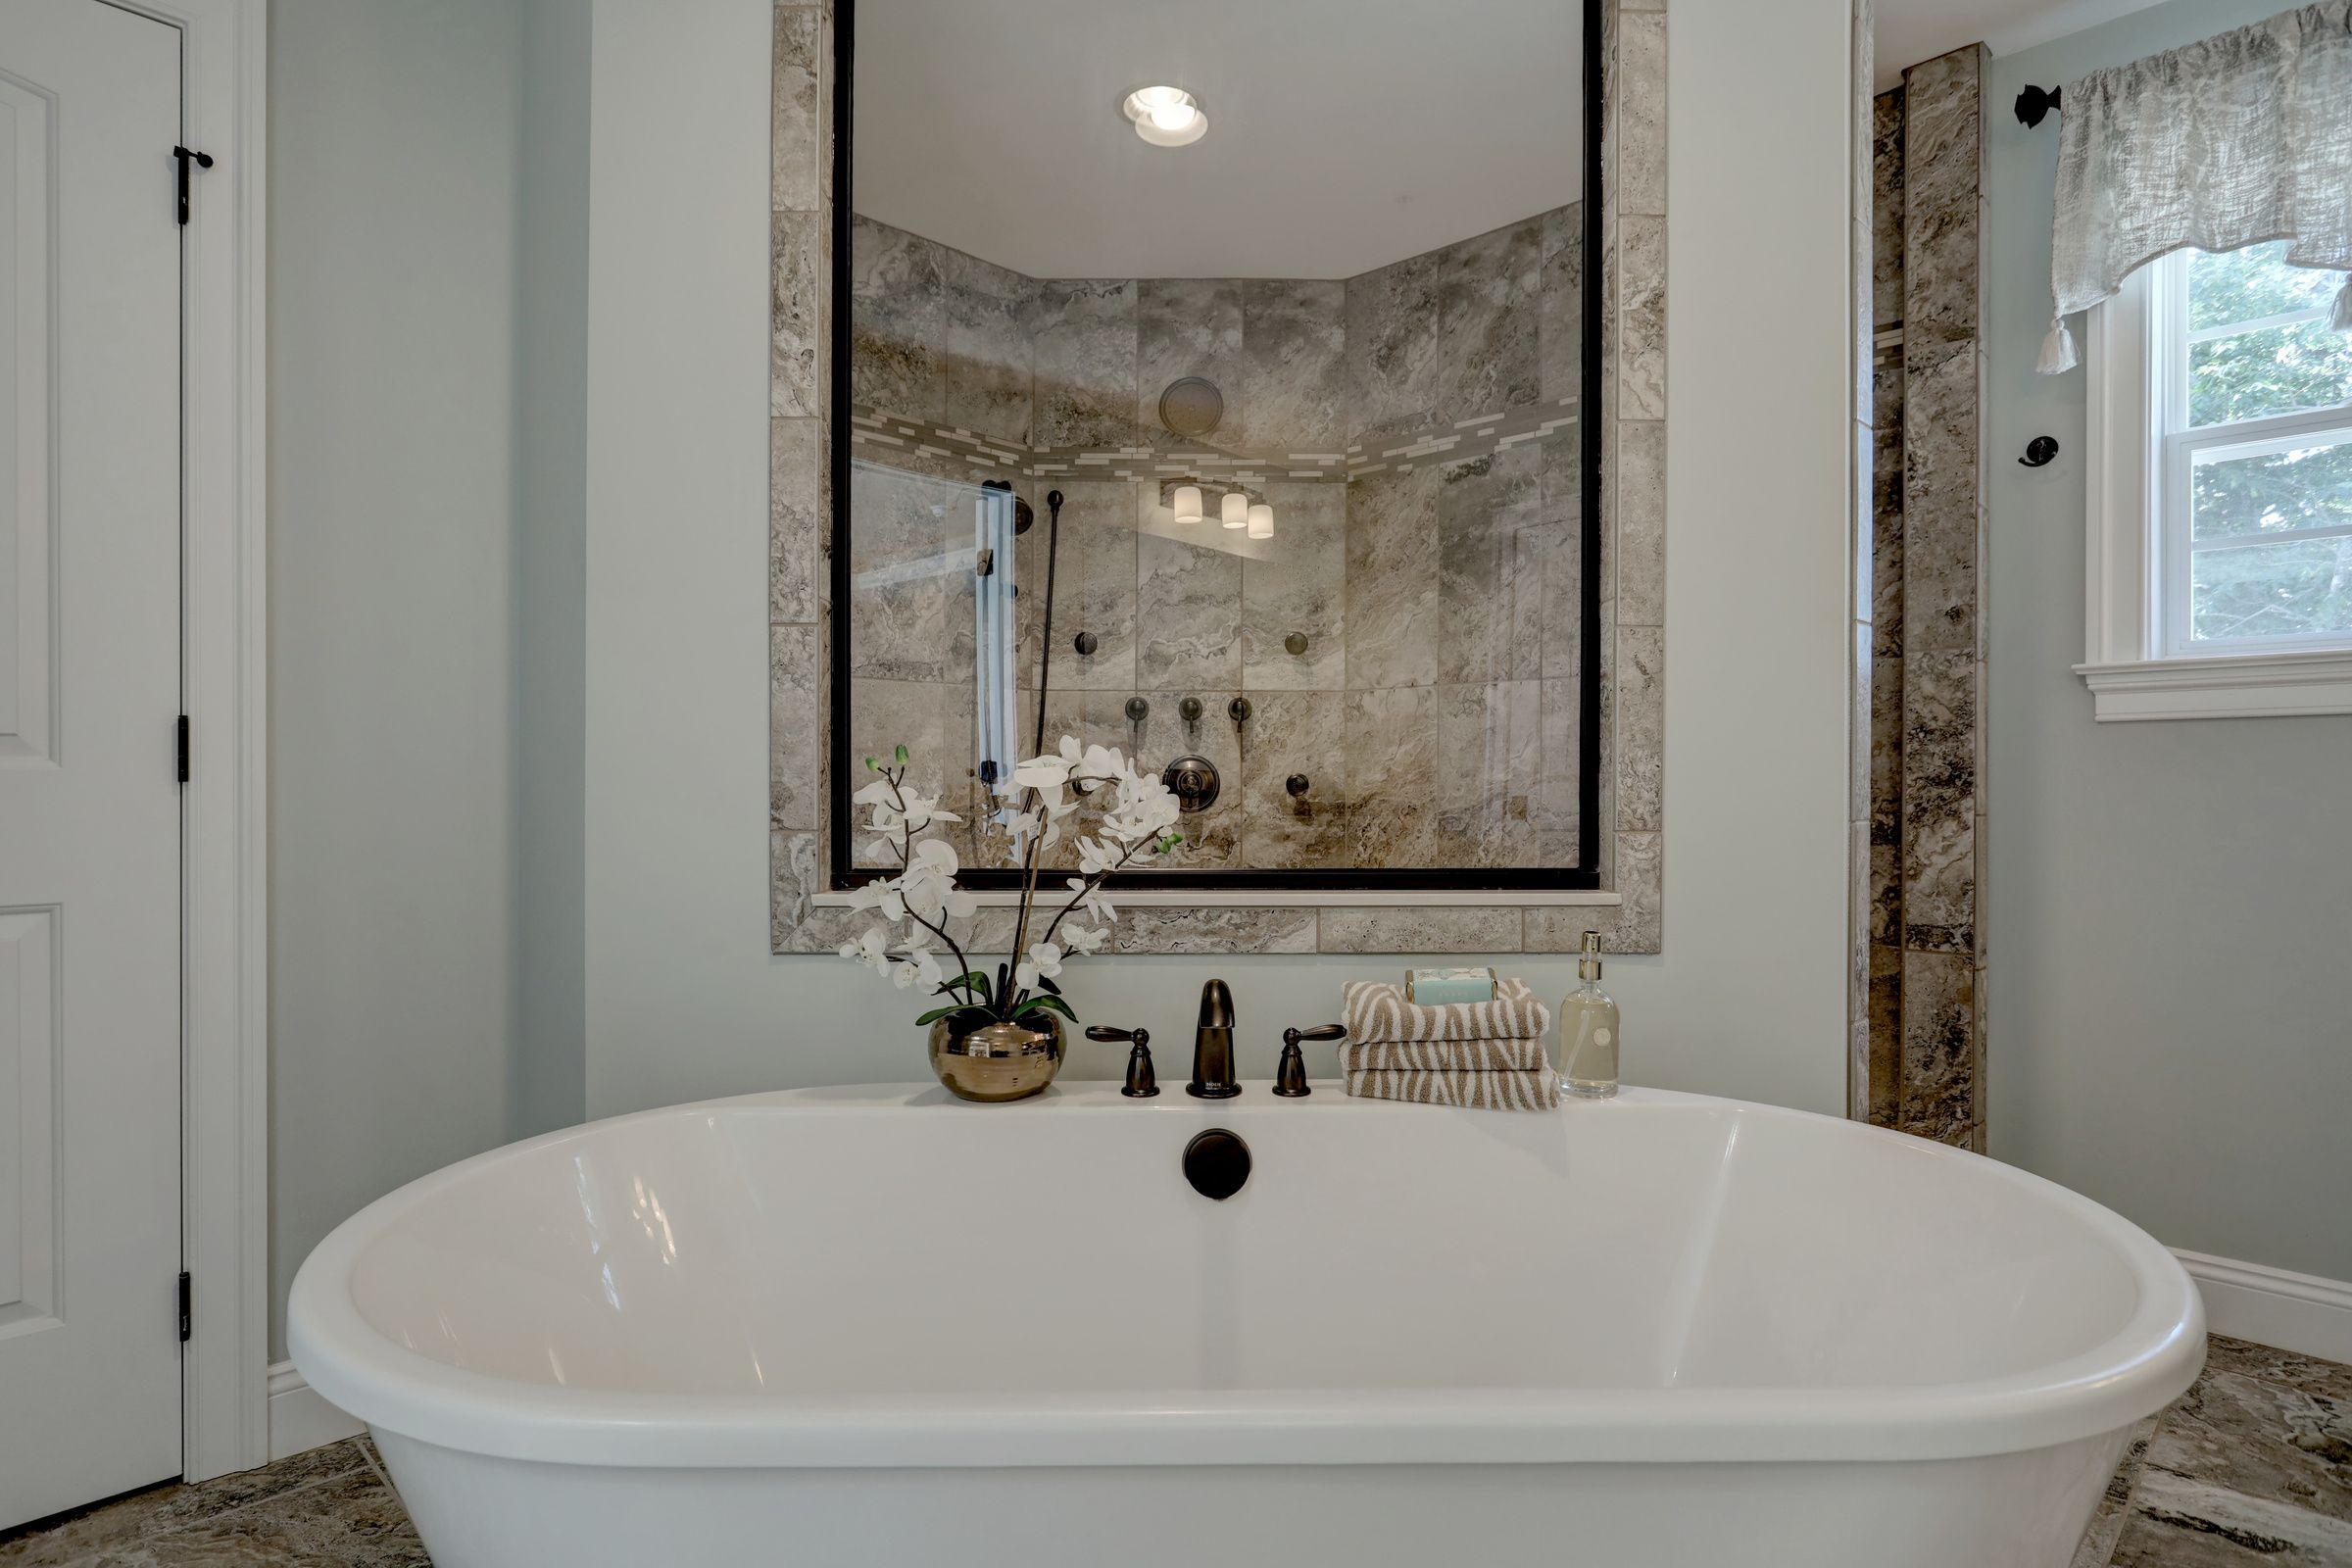 Bathroom featured in the Ethan Bordeaux By Keystone Custom Homes in Lancaster, PA